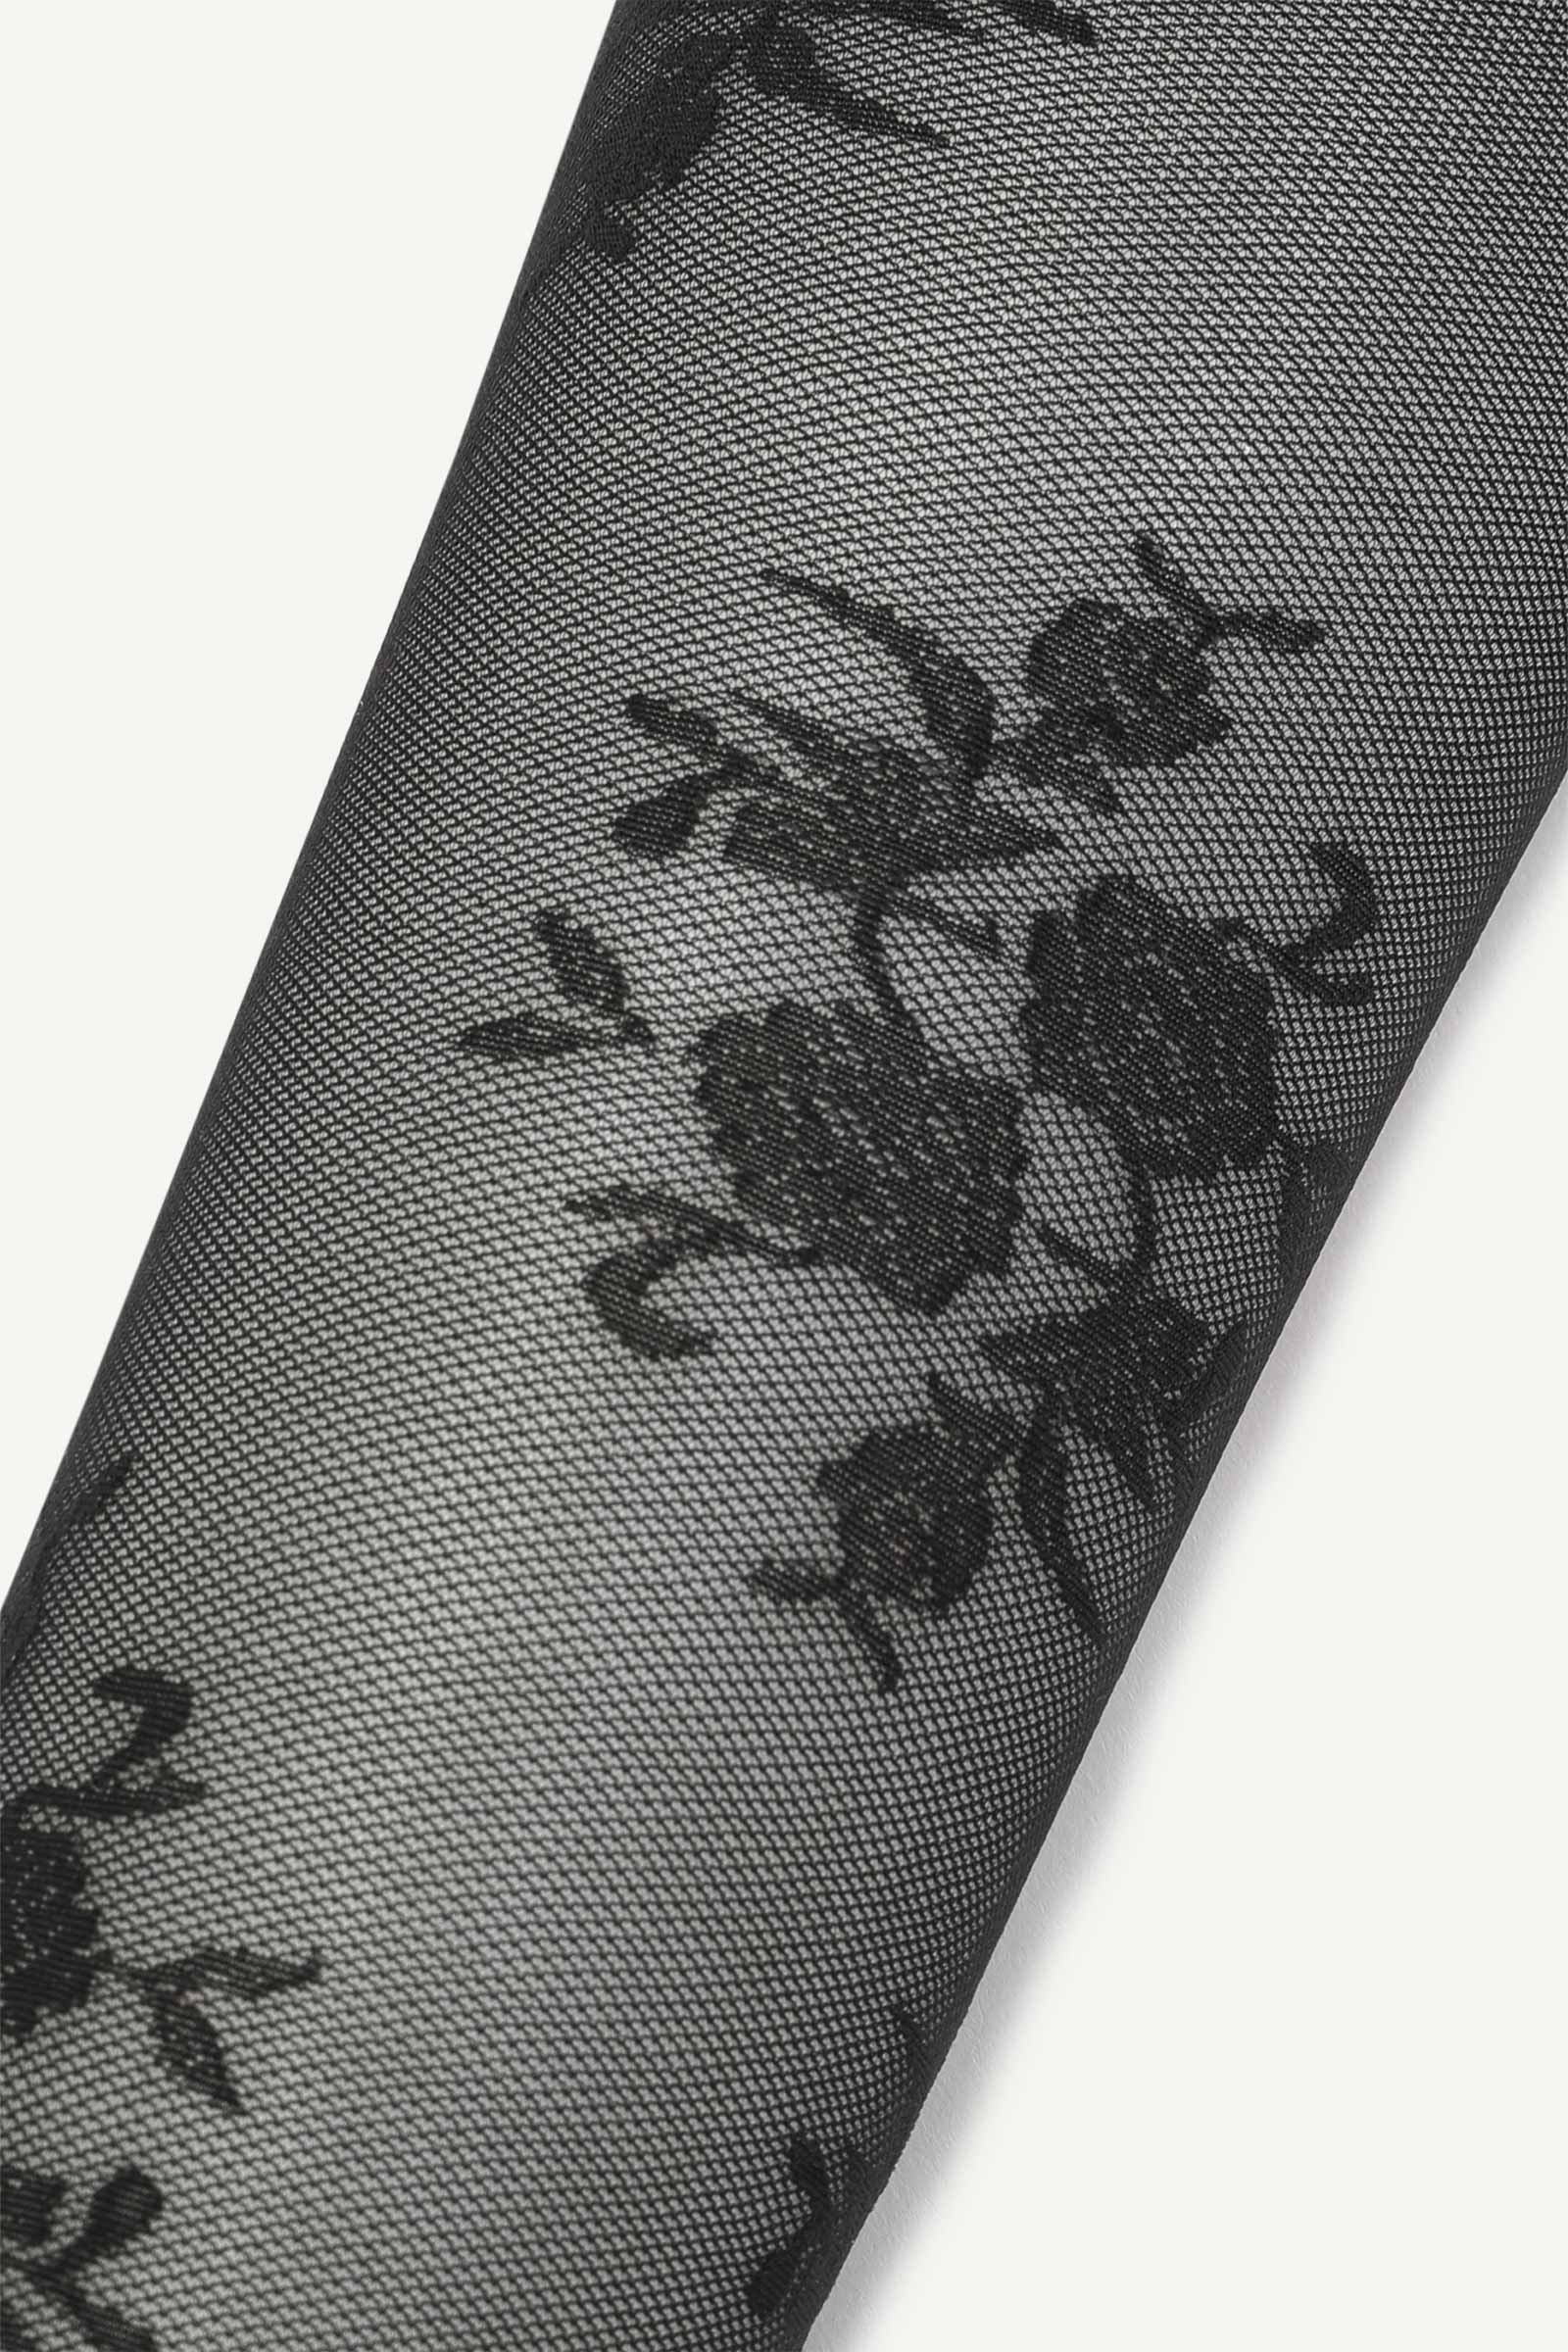 Embroidered Rose Tights